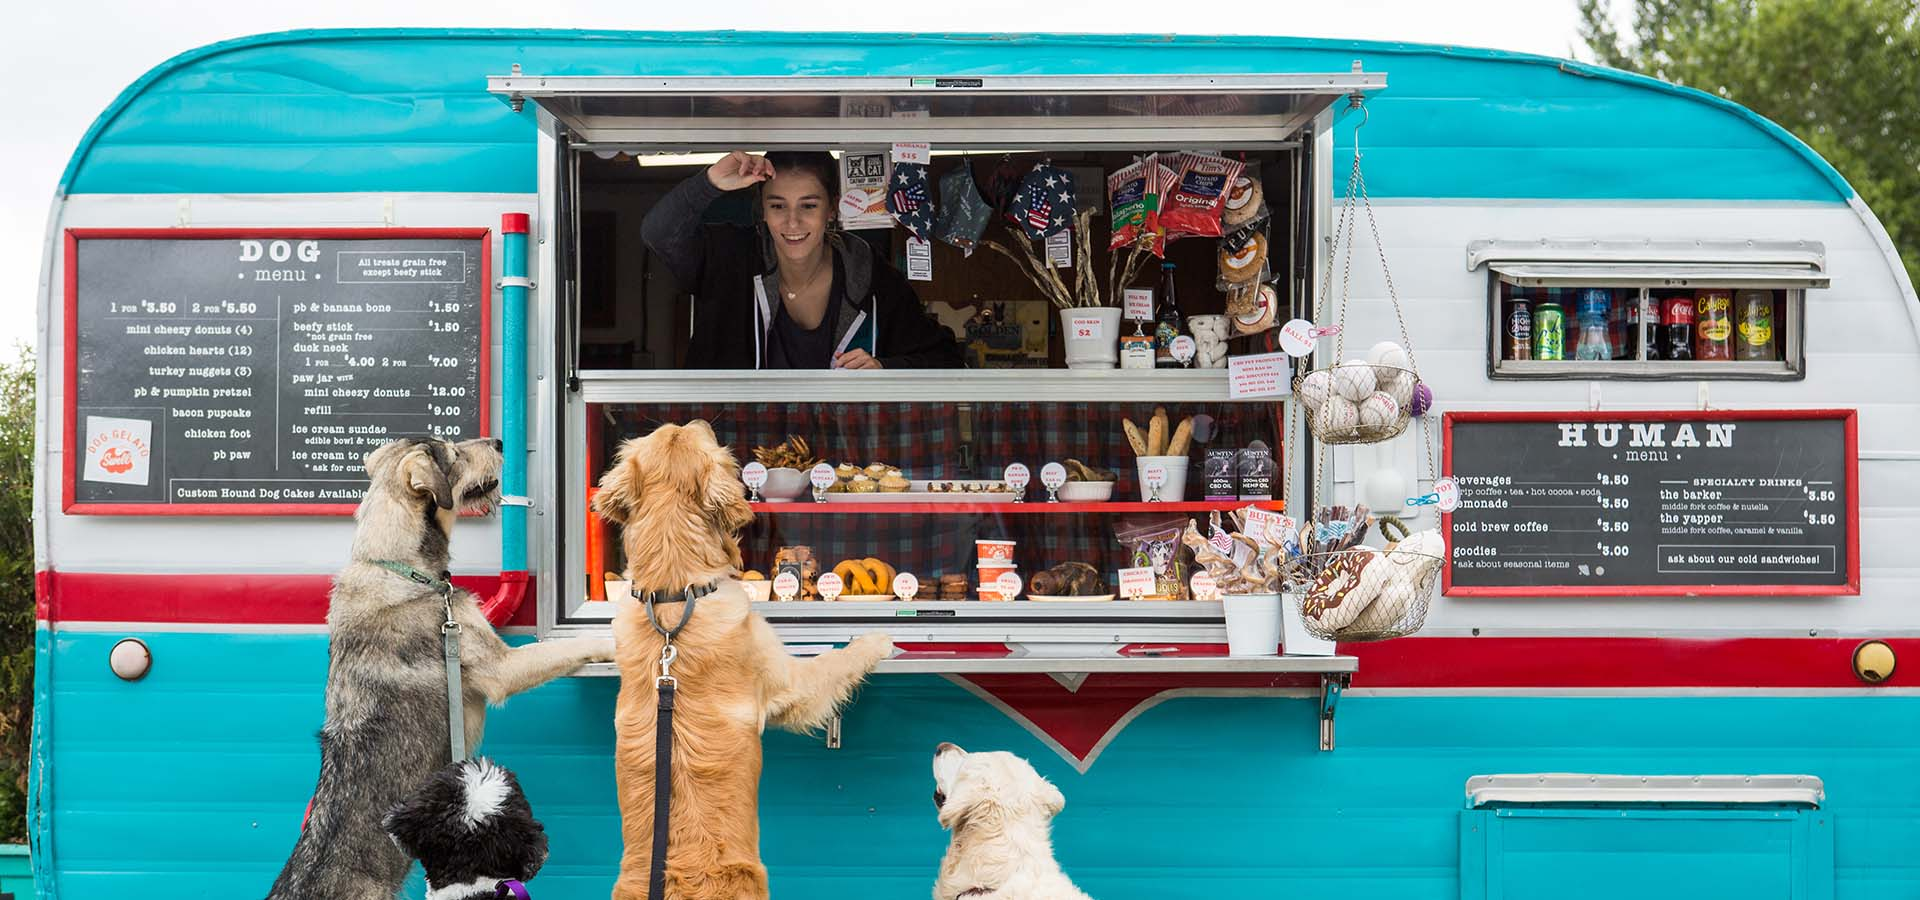 Food trailer for serving treats for dogs